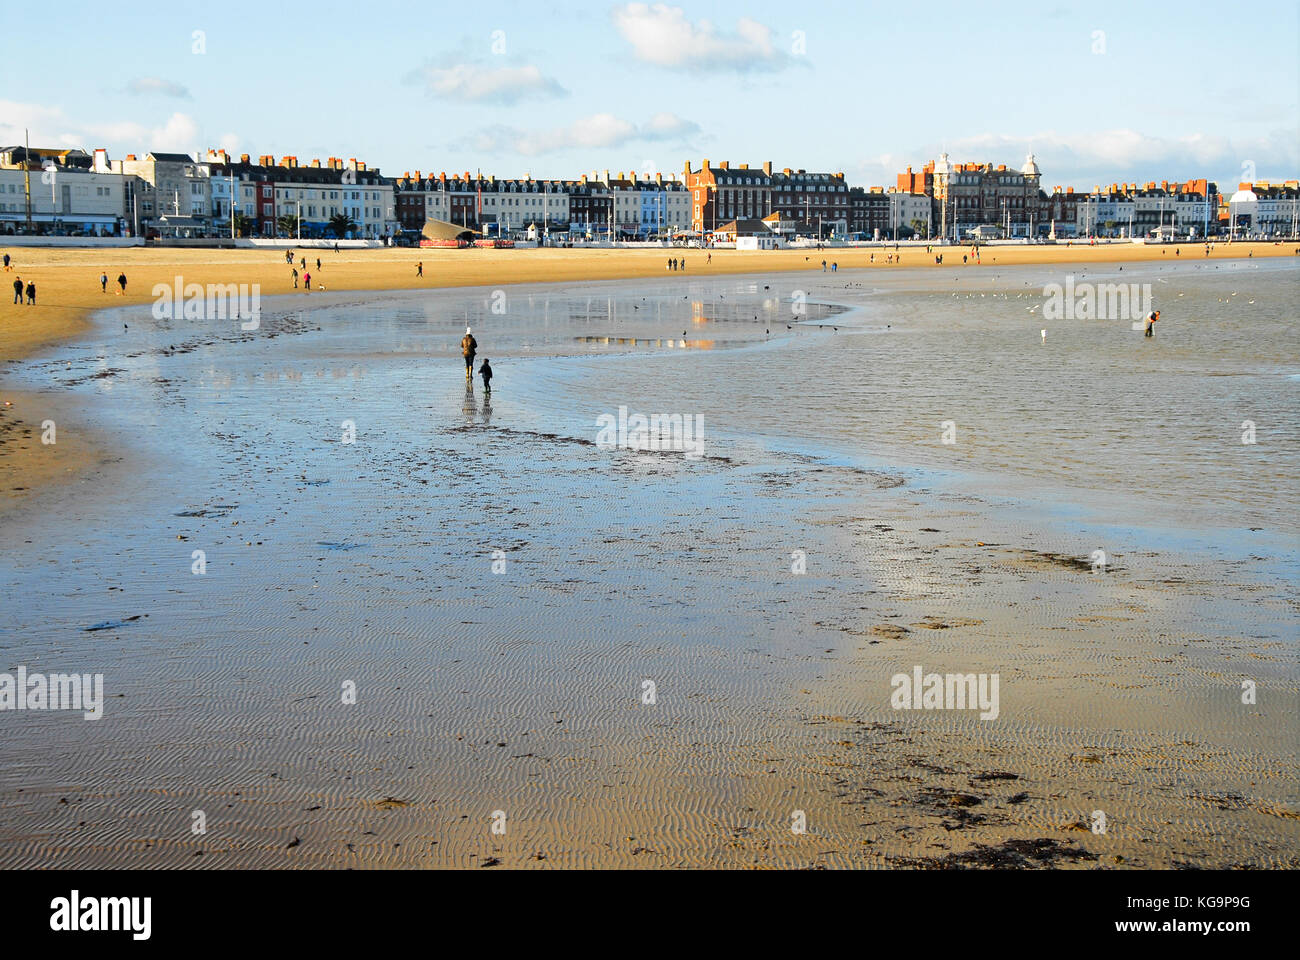 Weymouth, Dorset. 5th November 2017 - People wrap up warm and make the most of a gorgeous autumn day; strolling - Stock Image